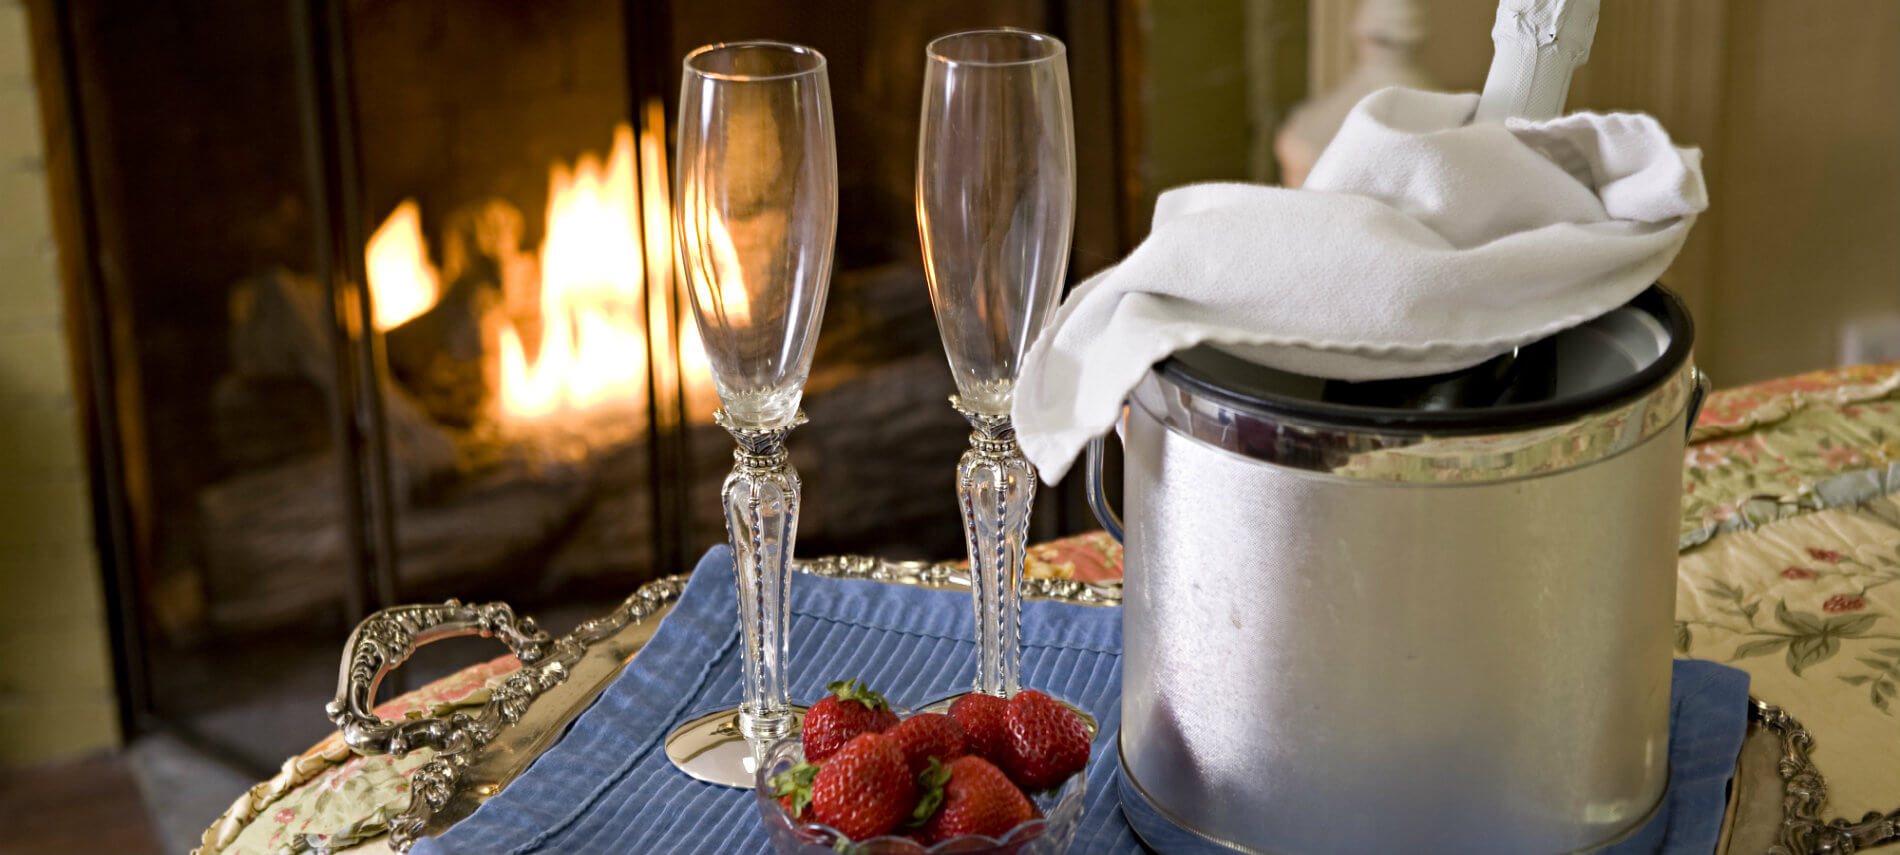 Tray topped with two champagne flutes, ice bucket with champagne, fresh strawberries, in front of a warm fire